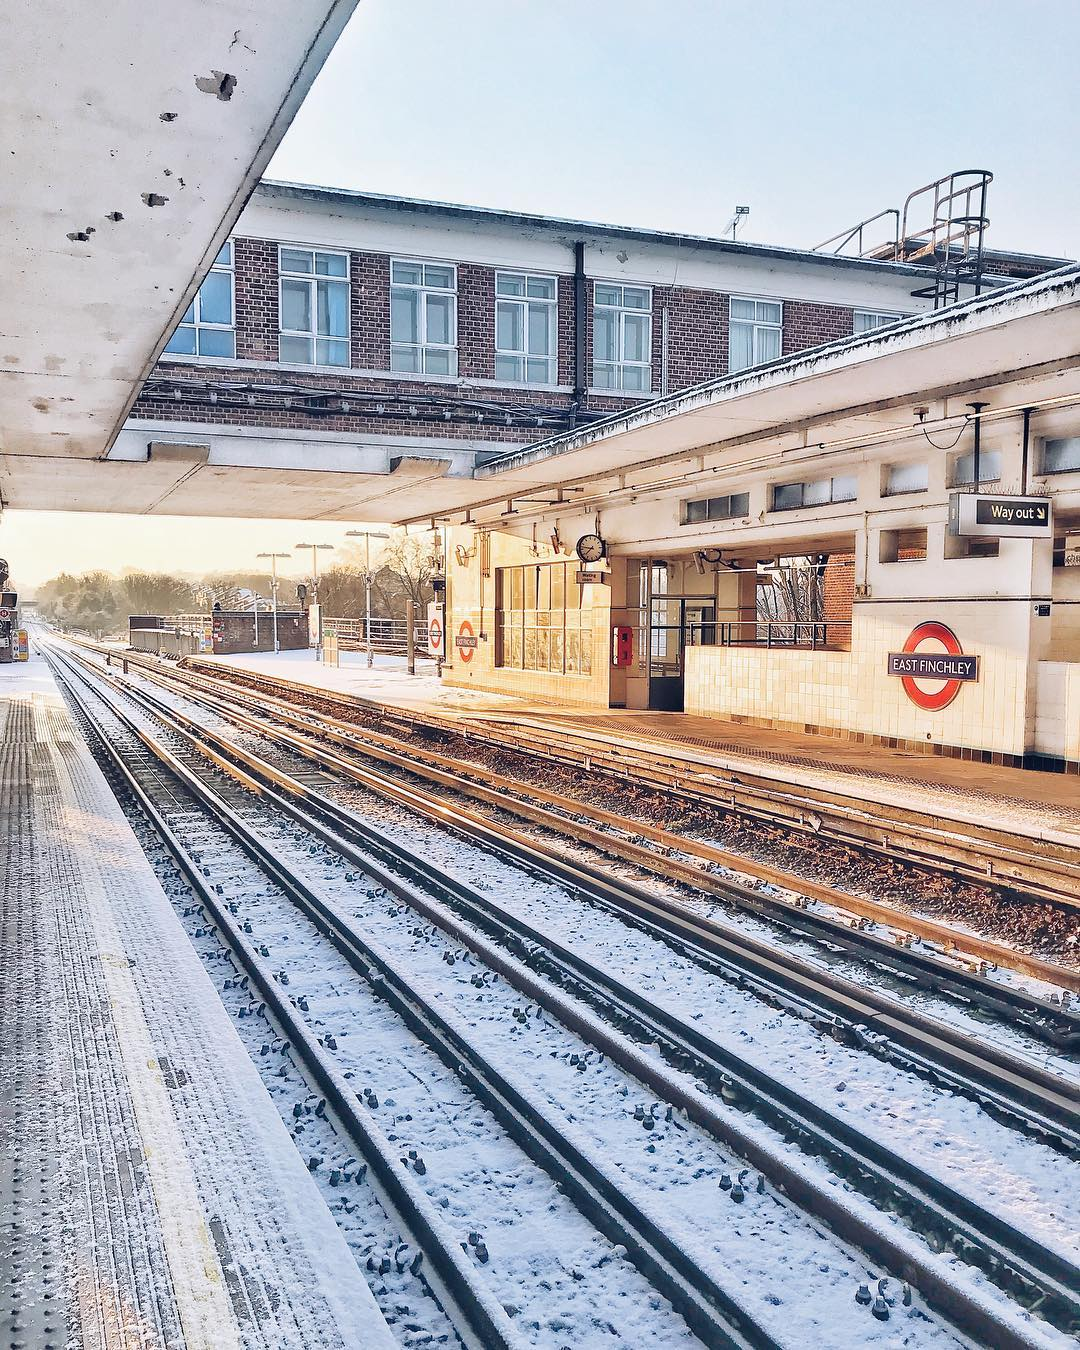 snow-east-finchley-tube